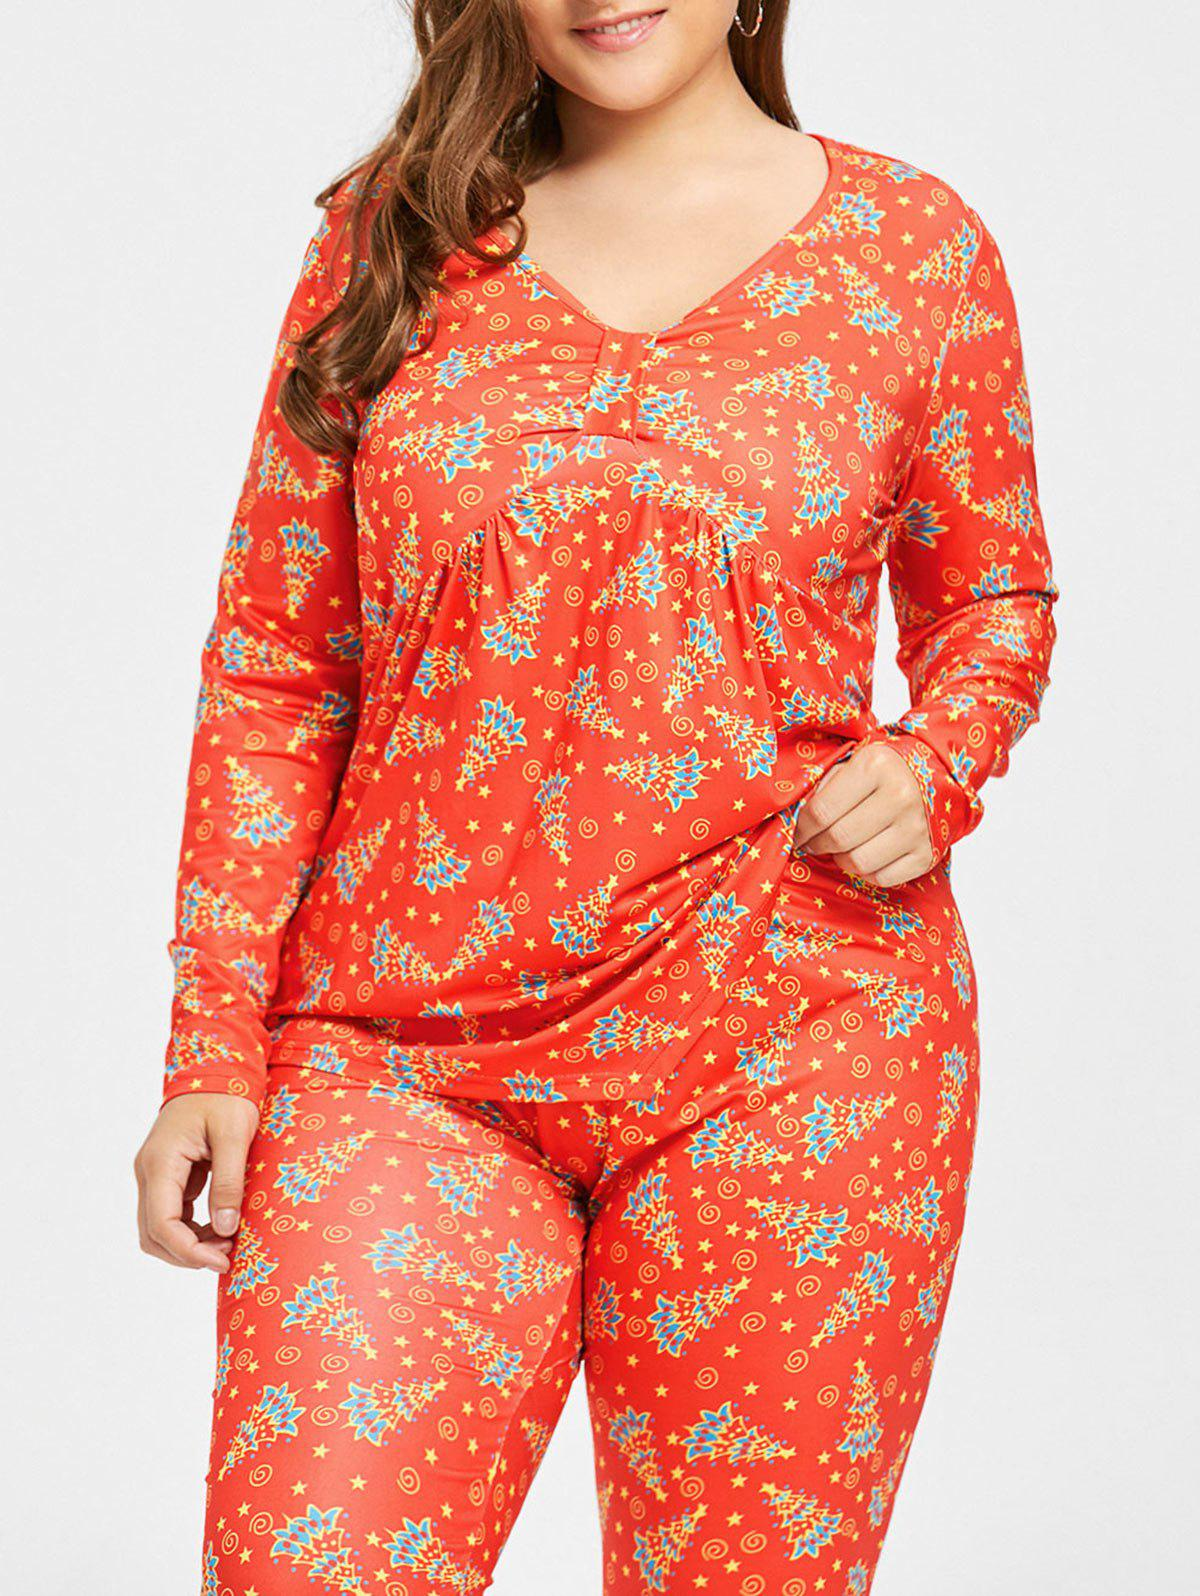 Plus Size Christmas Pajamas.Christmas Tree Plus Size Empire Waist T Shirt